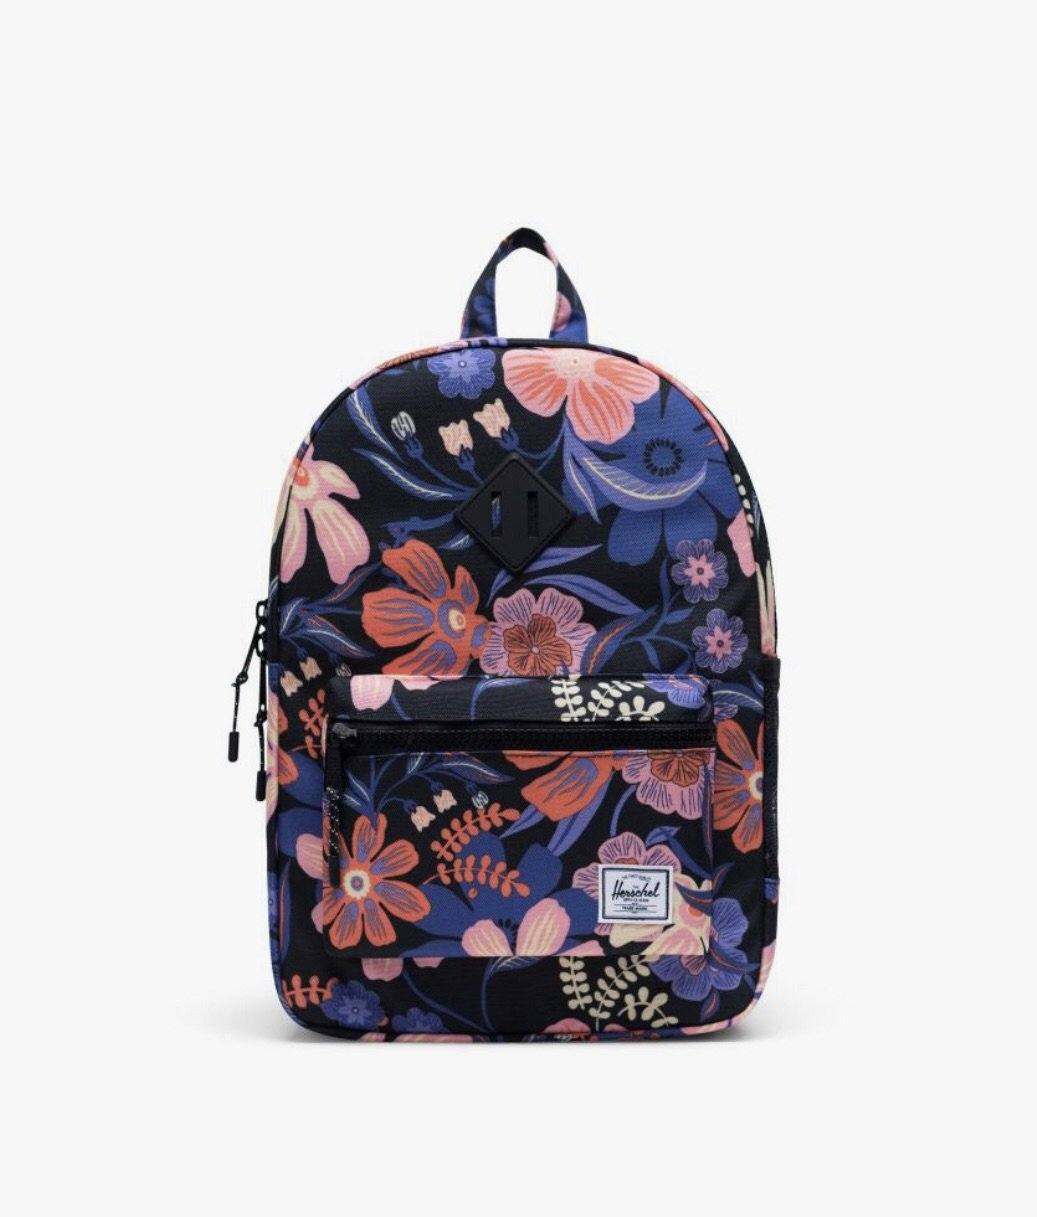 Herschel Youth 16L Backpack - Night Floral Black Backpack Herschel